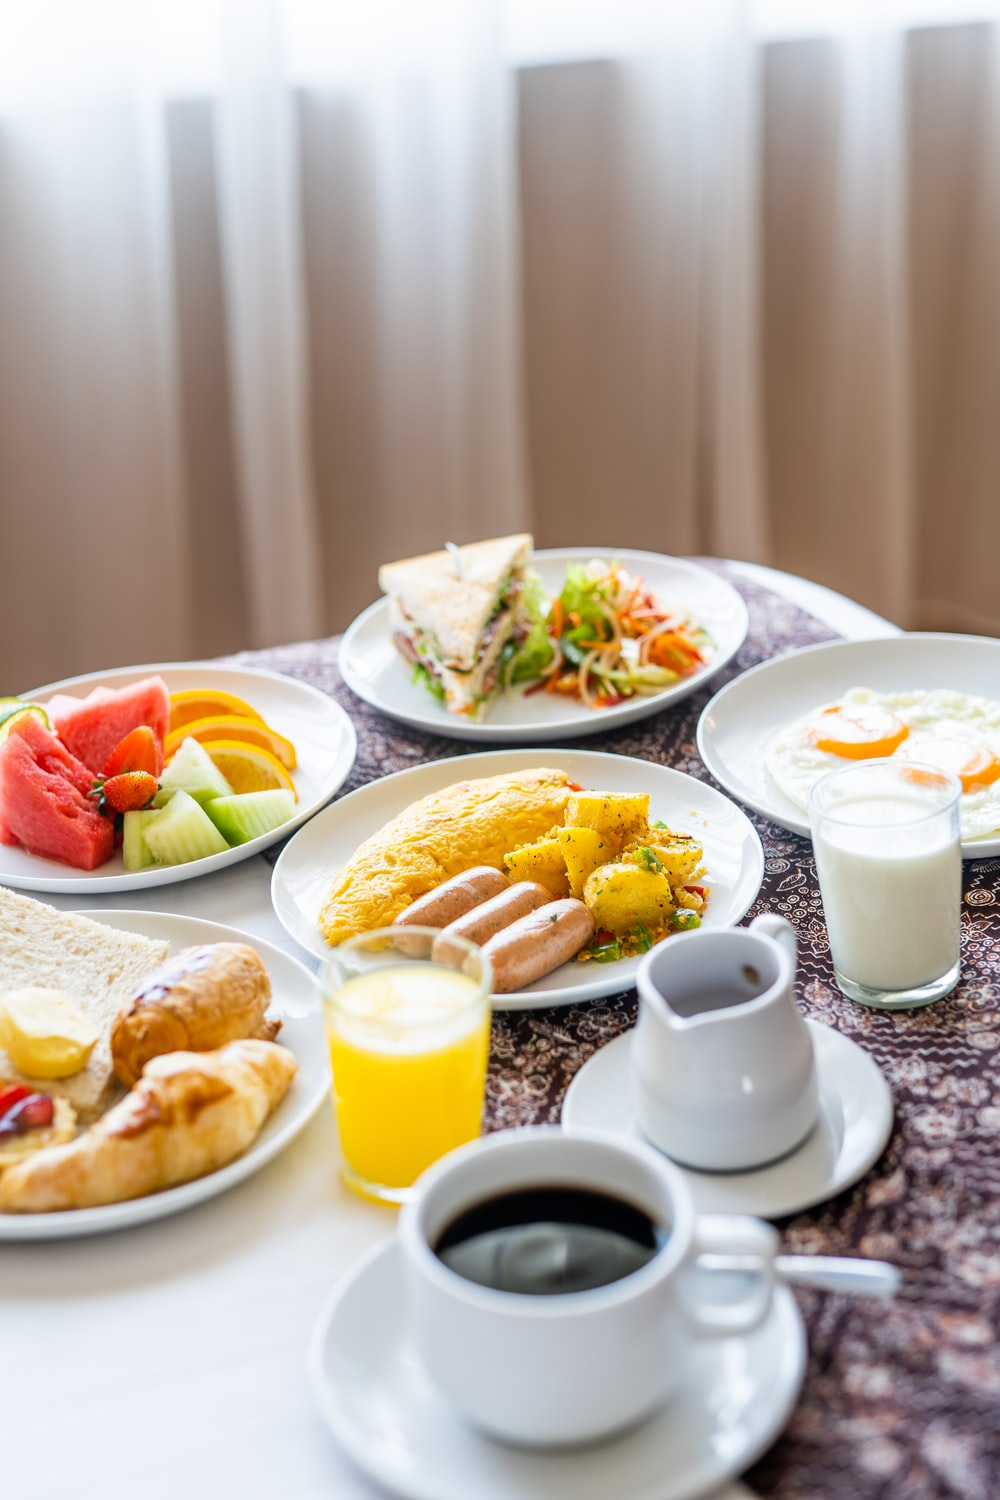 assorted cooked foods and sliced fruits